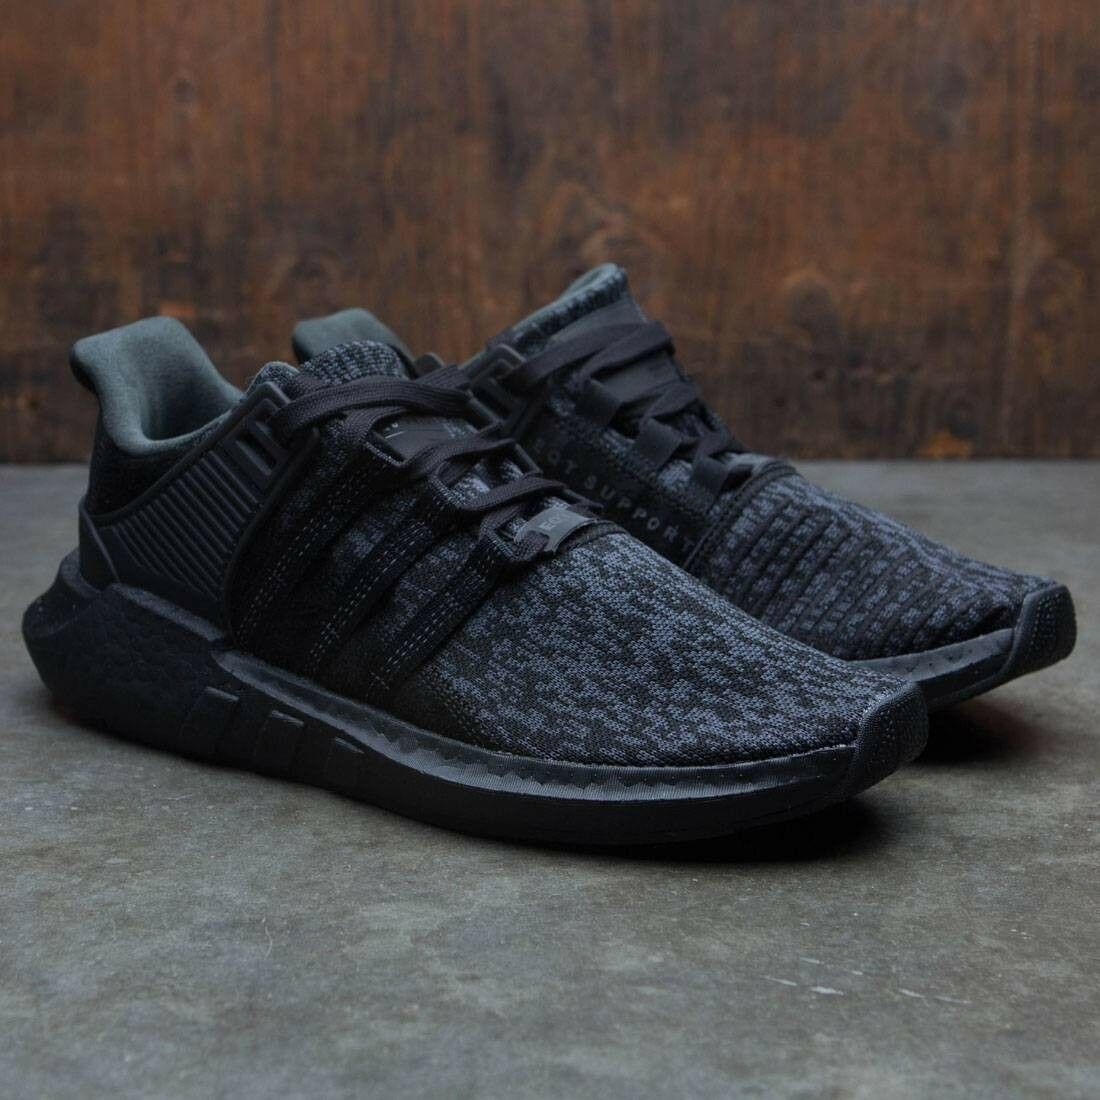 Adidas Ultra Boost 93 17 EQT Support Triple Black Black Black Size 14. BY9512 yeezy nmd fb0e0d